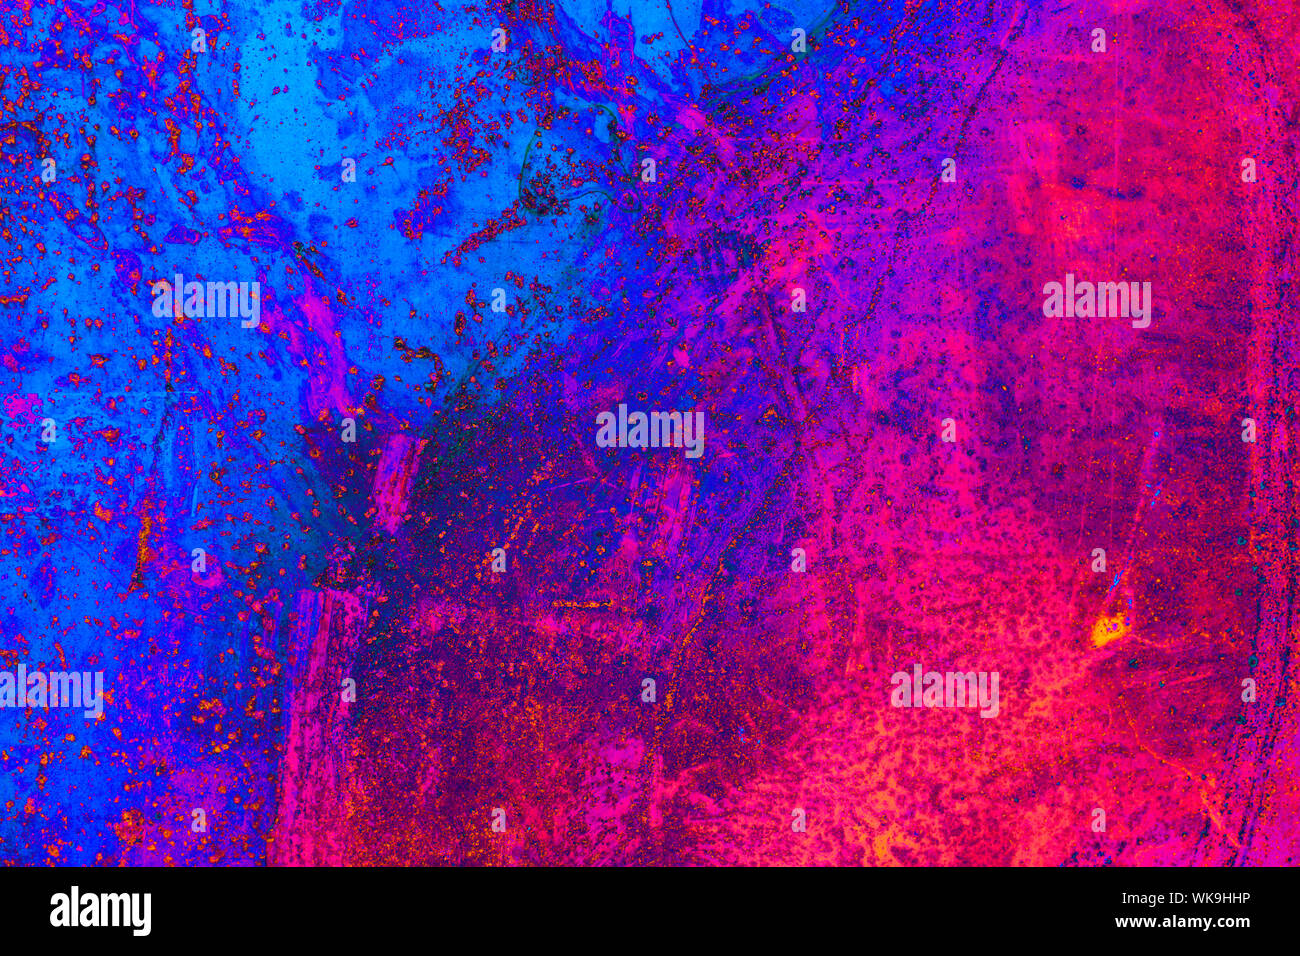 Colorful Texture For Designer Background Background In Neon Colors Abstract Background Of Cracked Paint Great For Design And Texture Background Stock Photo Alamy